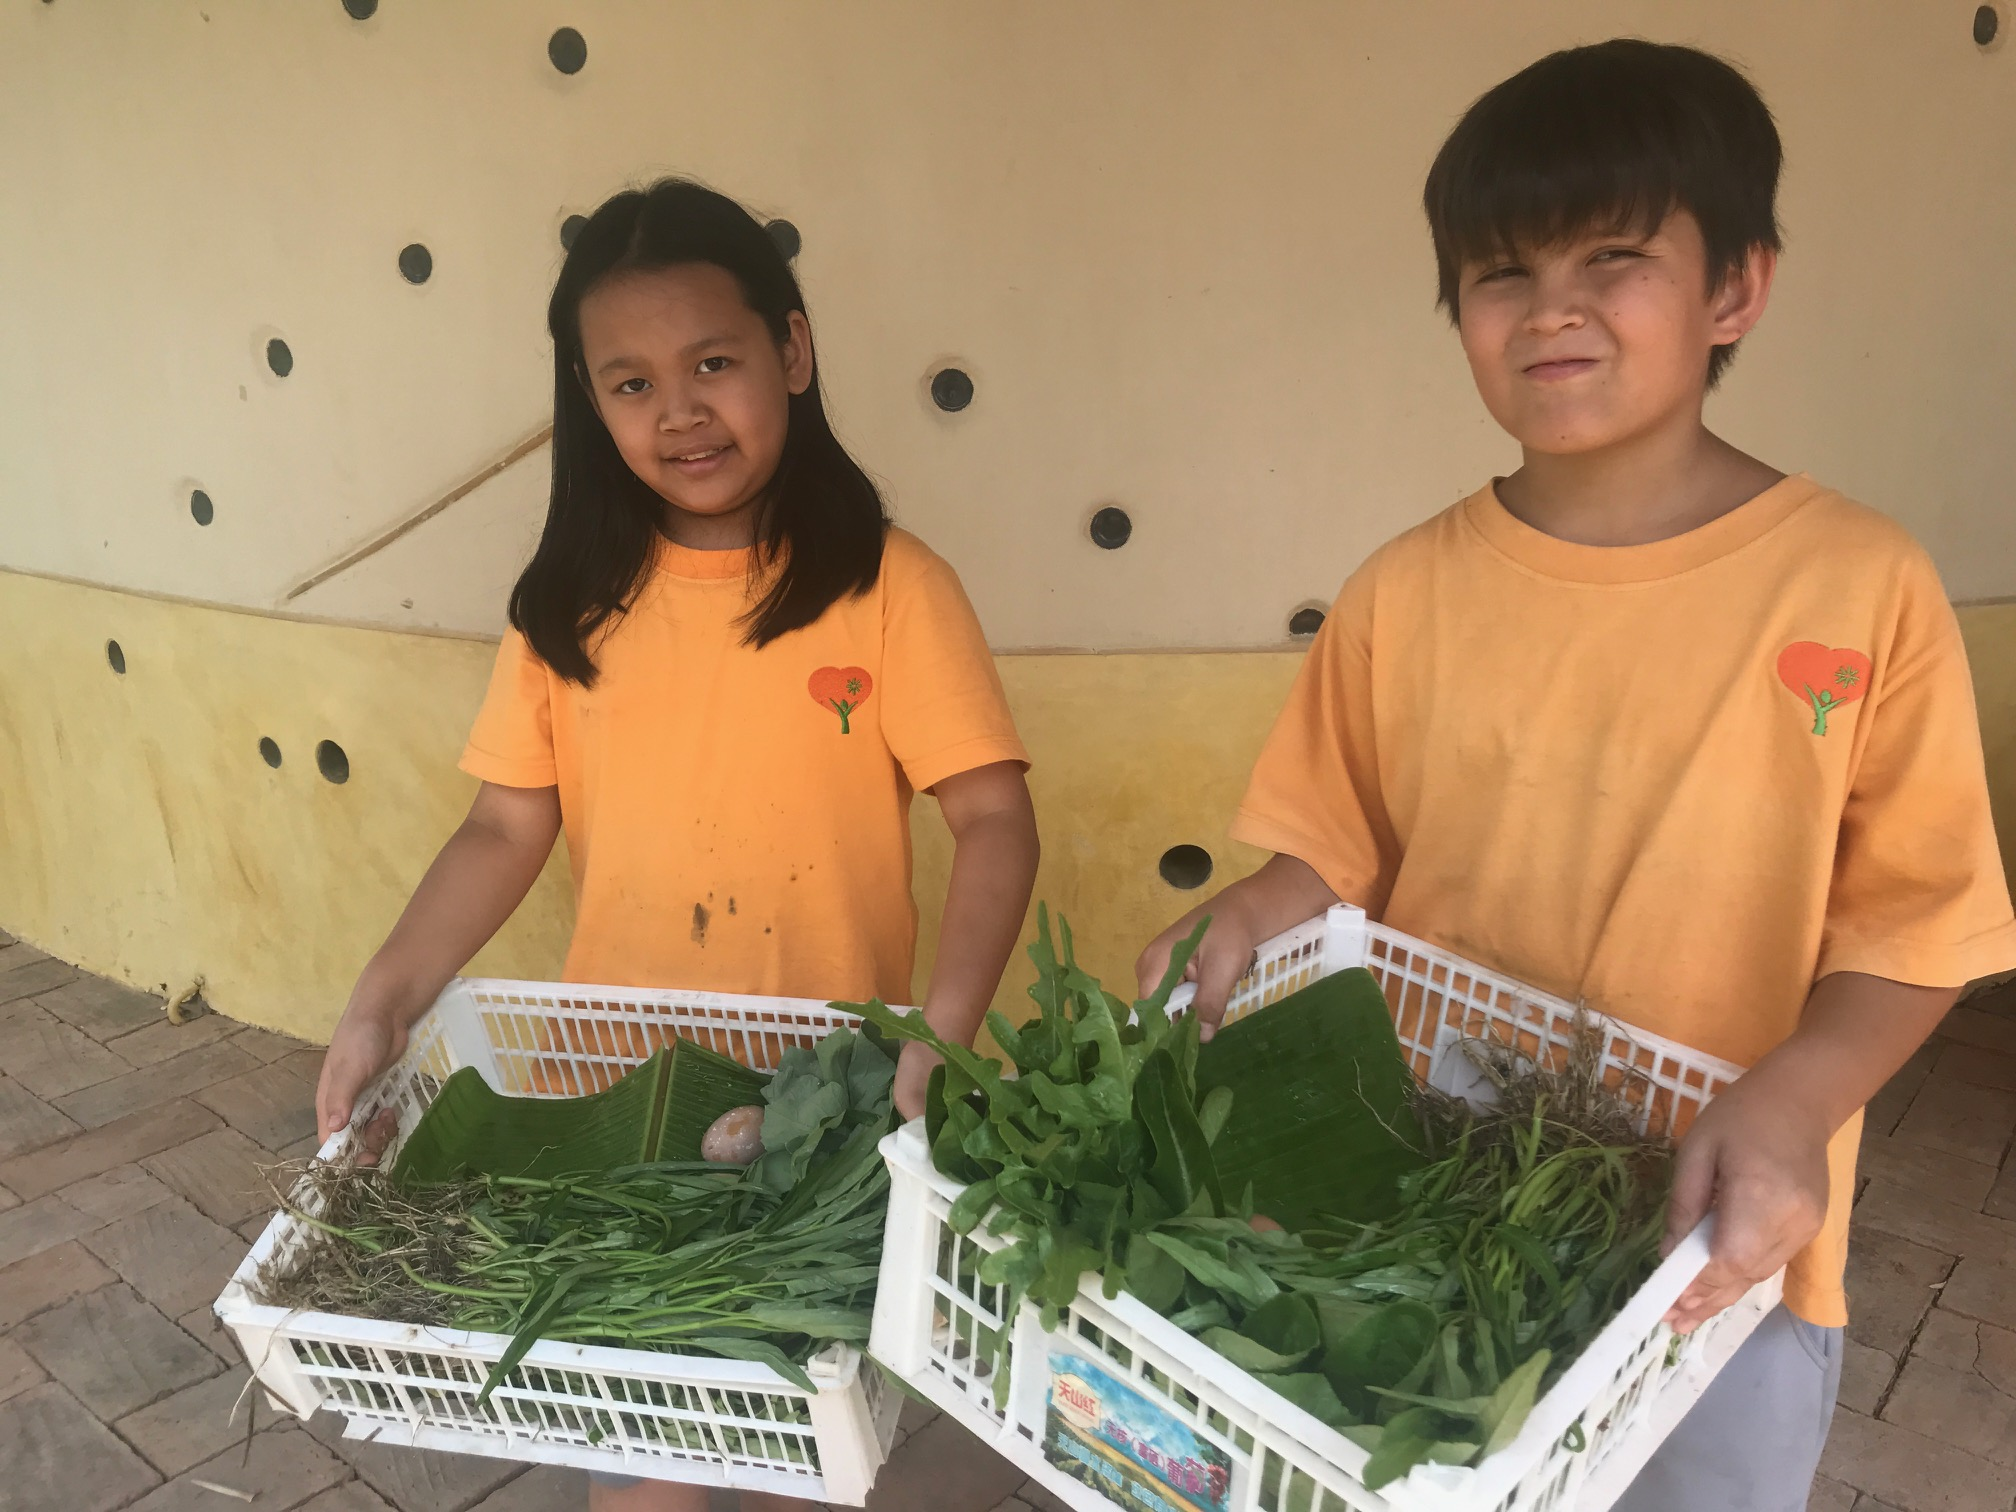 Panyaden self-sufficency farming life skills – students with organic vegetables grown at school